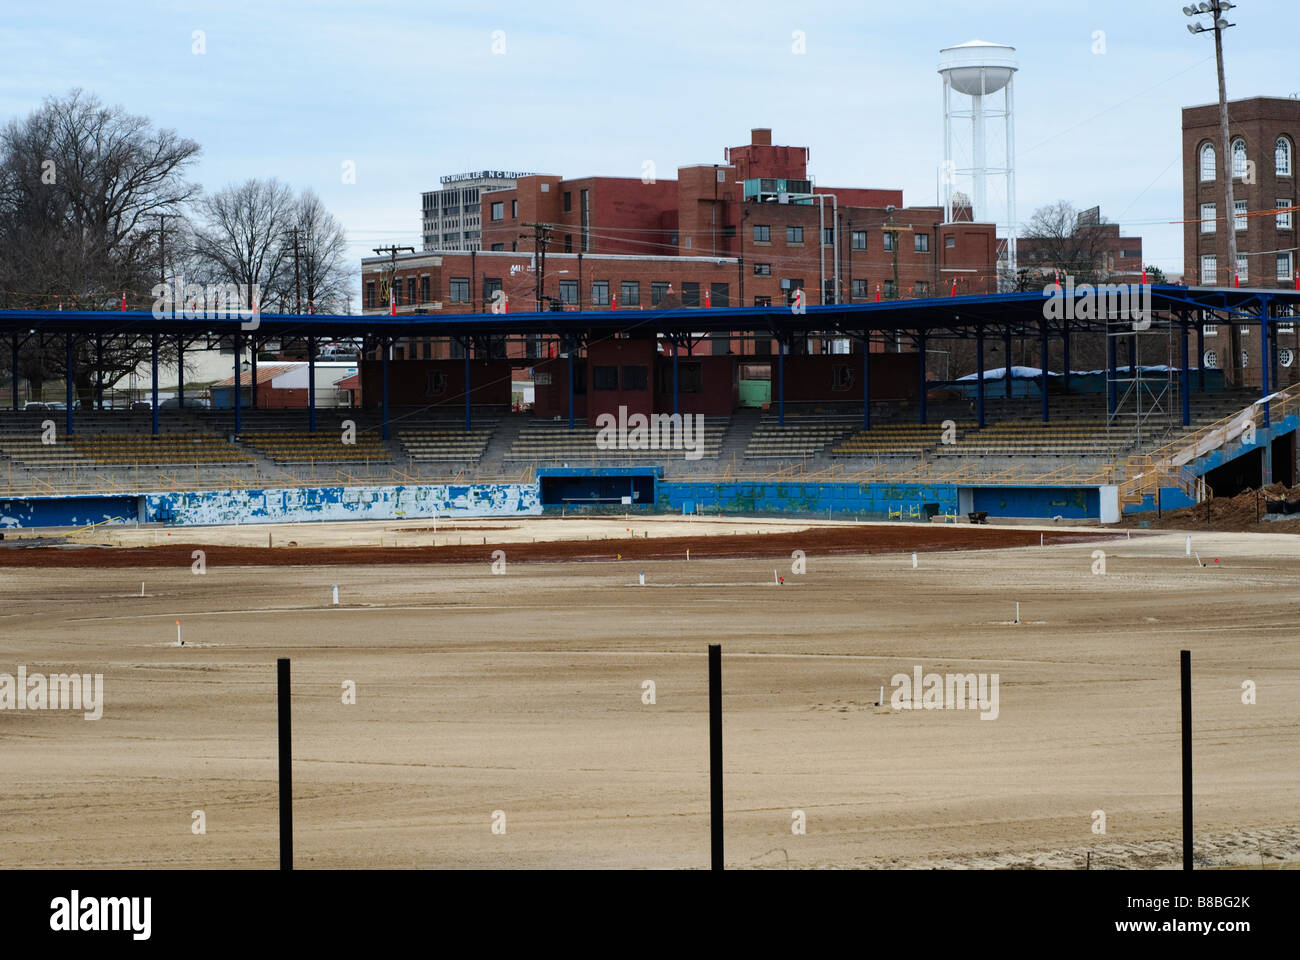 Durham Athletic Park, former stadium of the Durham Bulls Baseball team - Stock Image